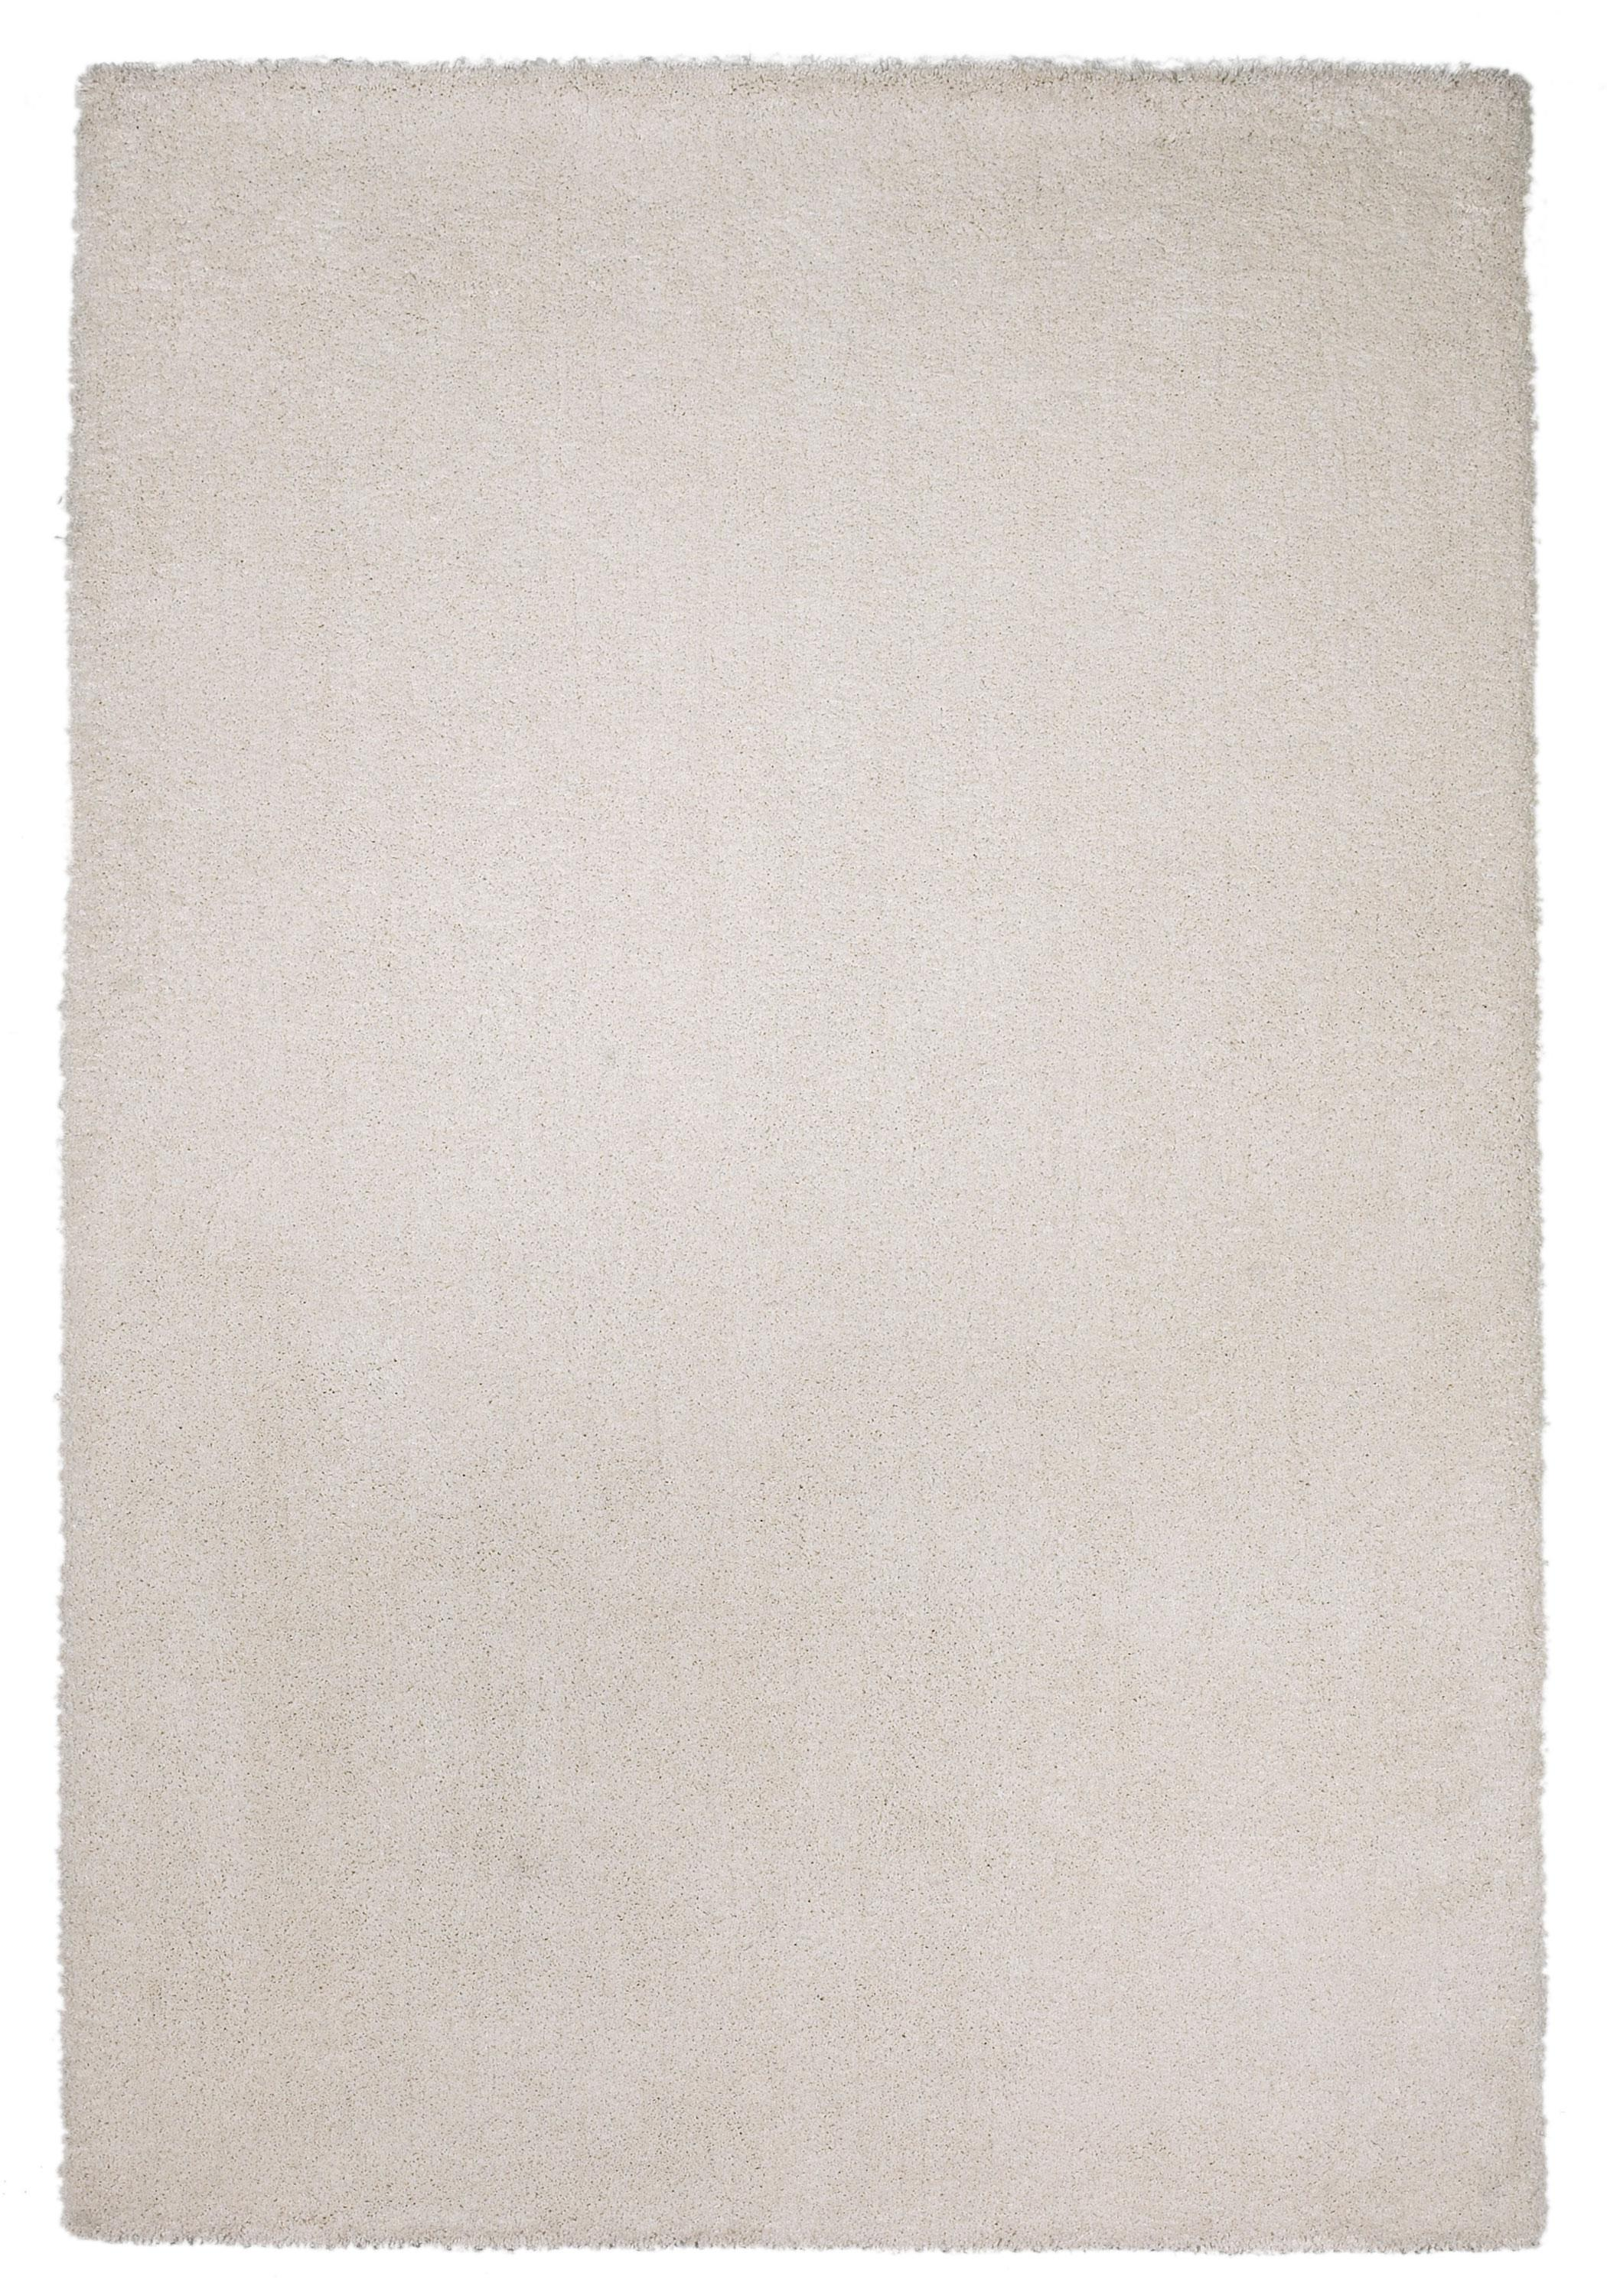 Bliss 9' x 13' Rug by Kas at Wilson's Furniture